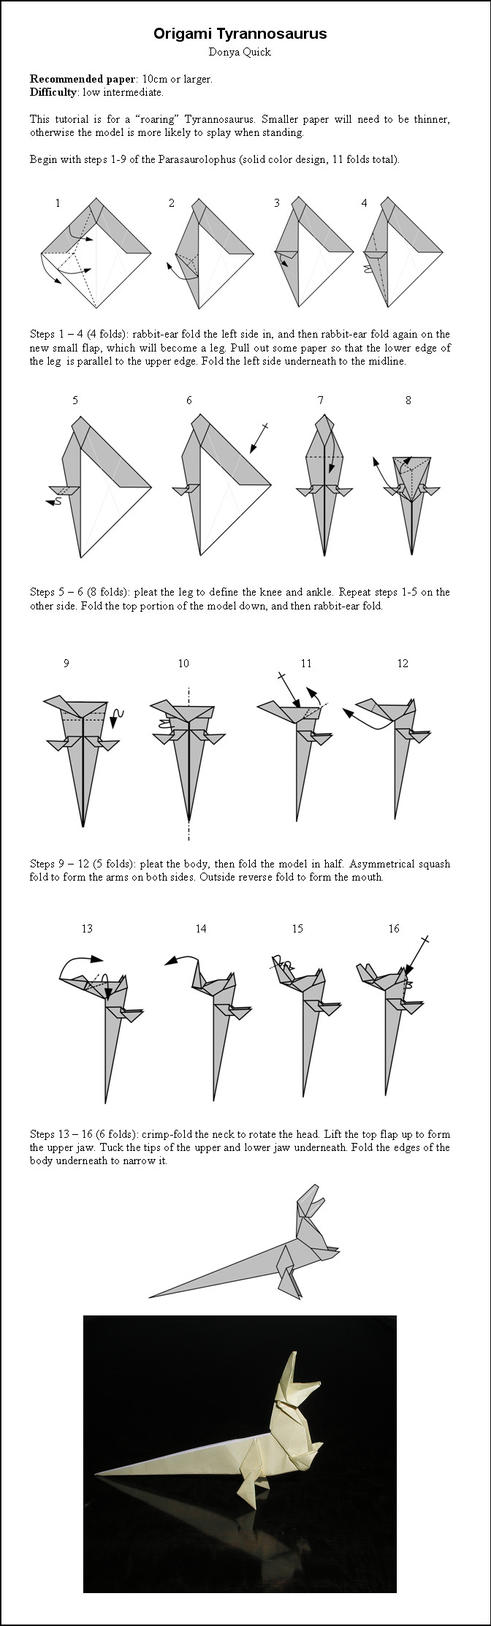 Origami T Rex Instructions By Donyaquick On Deviantart